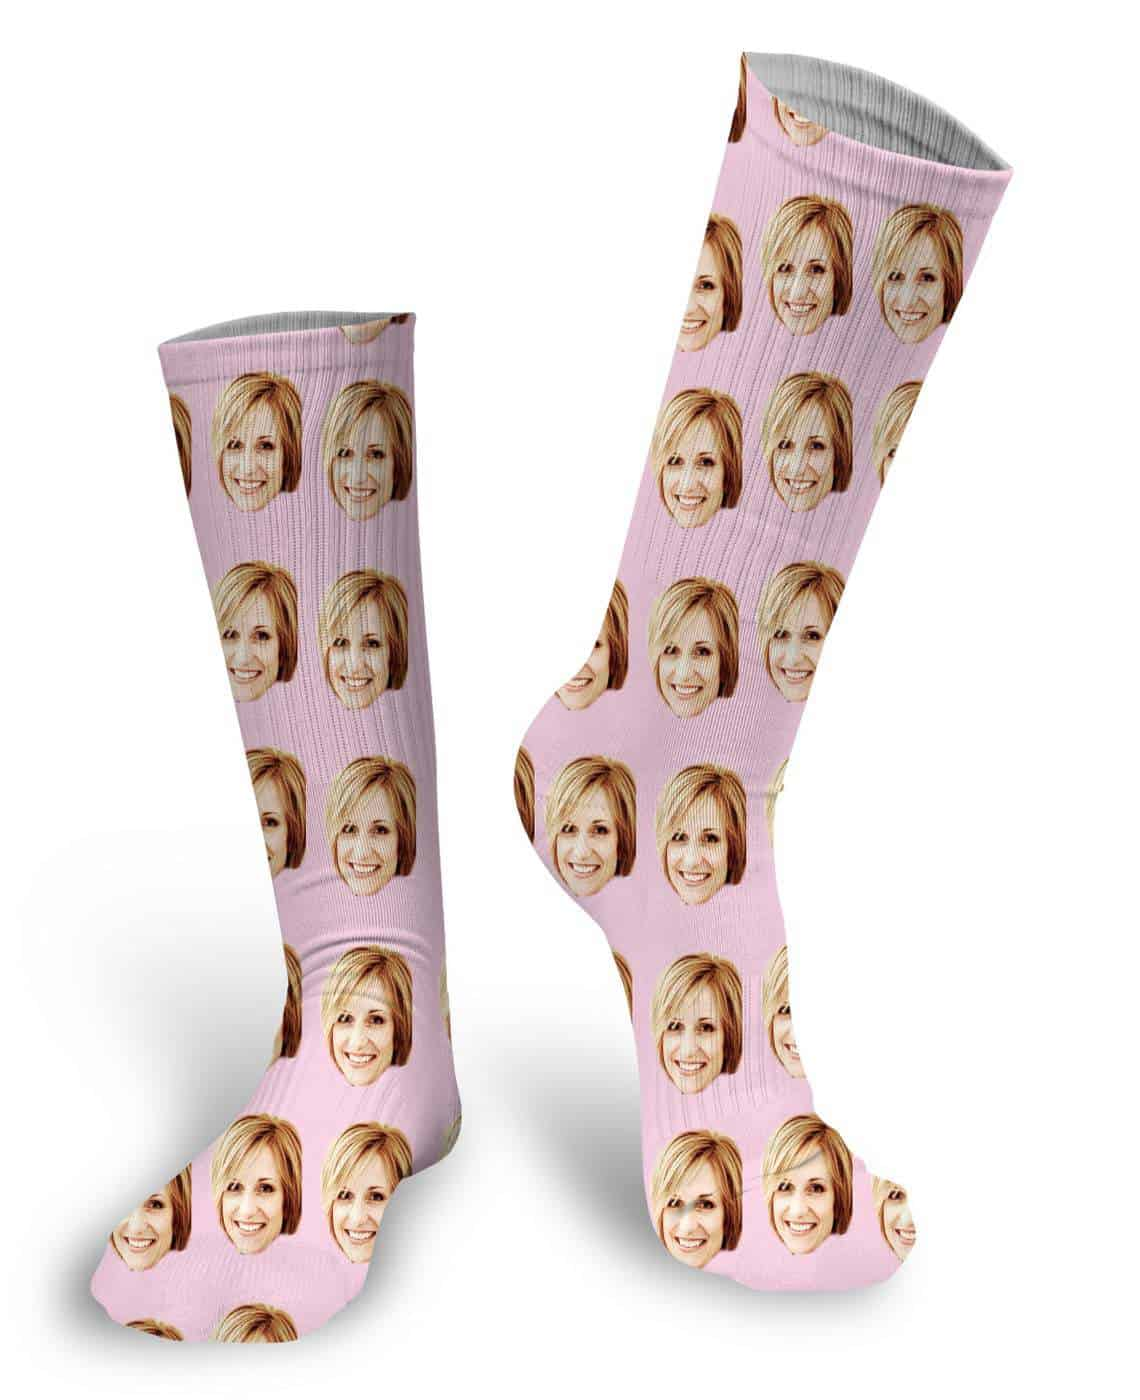 Custom Face Socks in pink color - gifts for teen girls